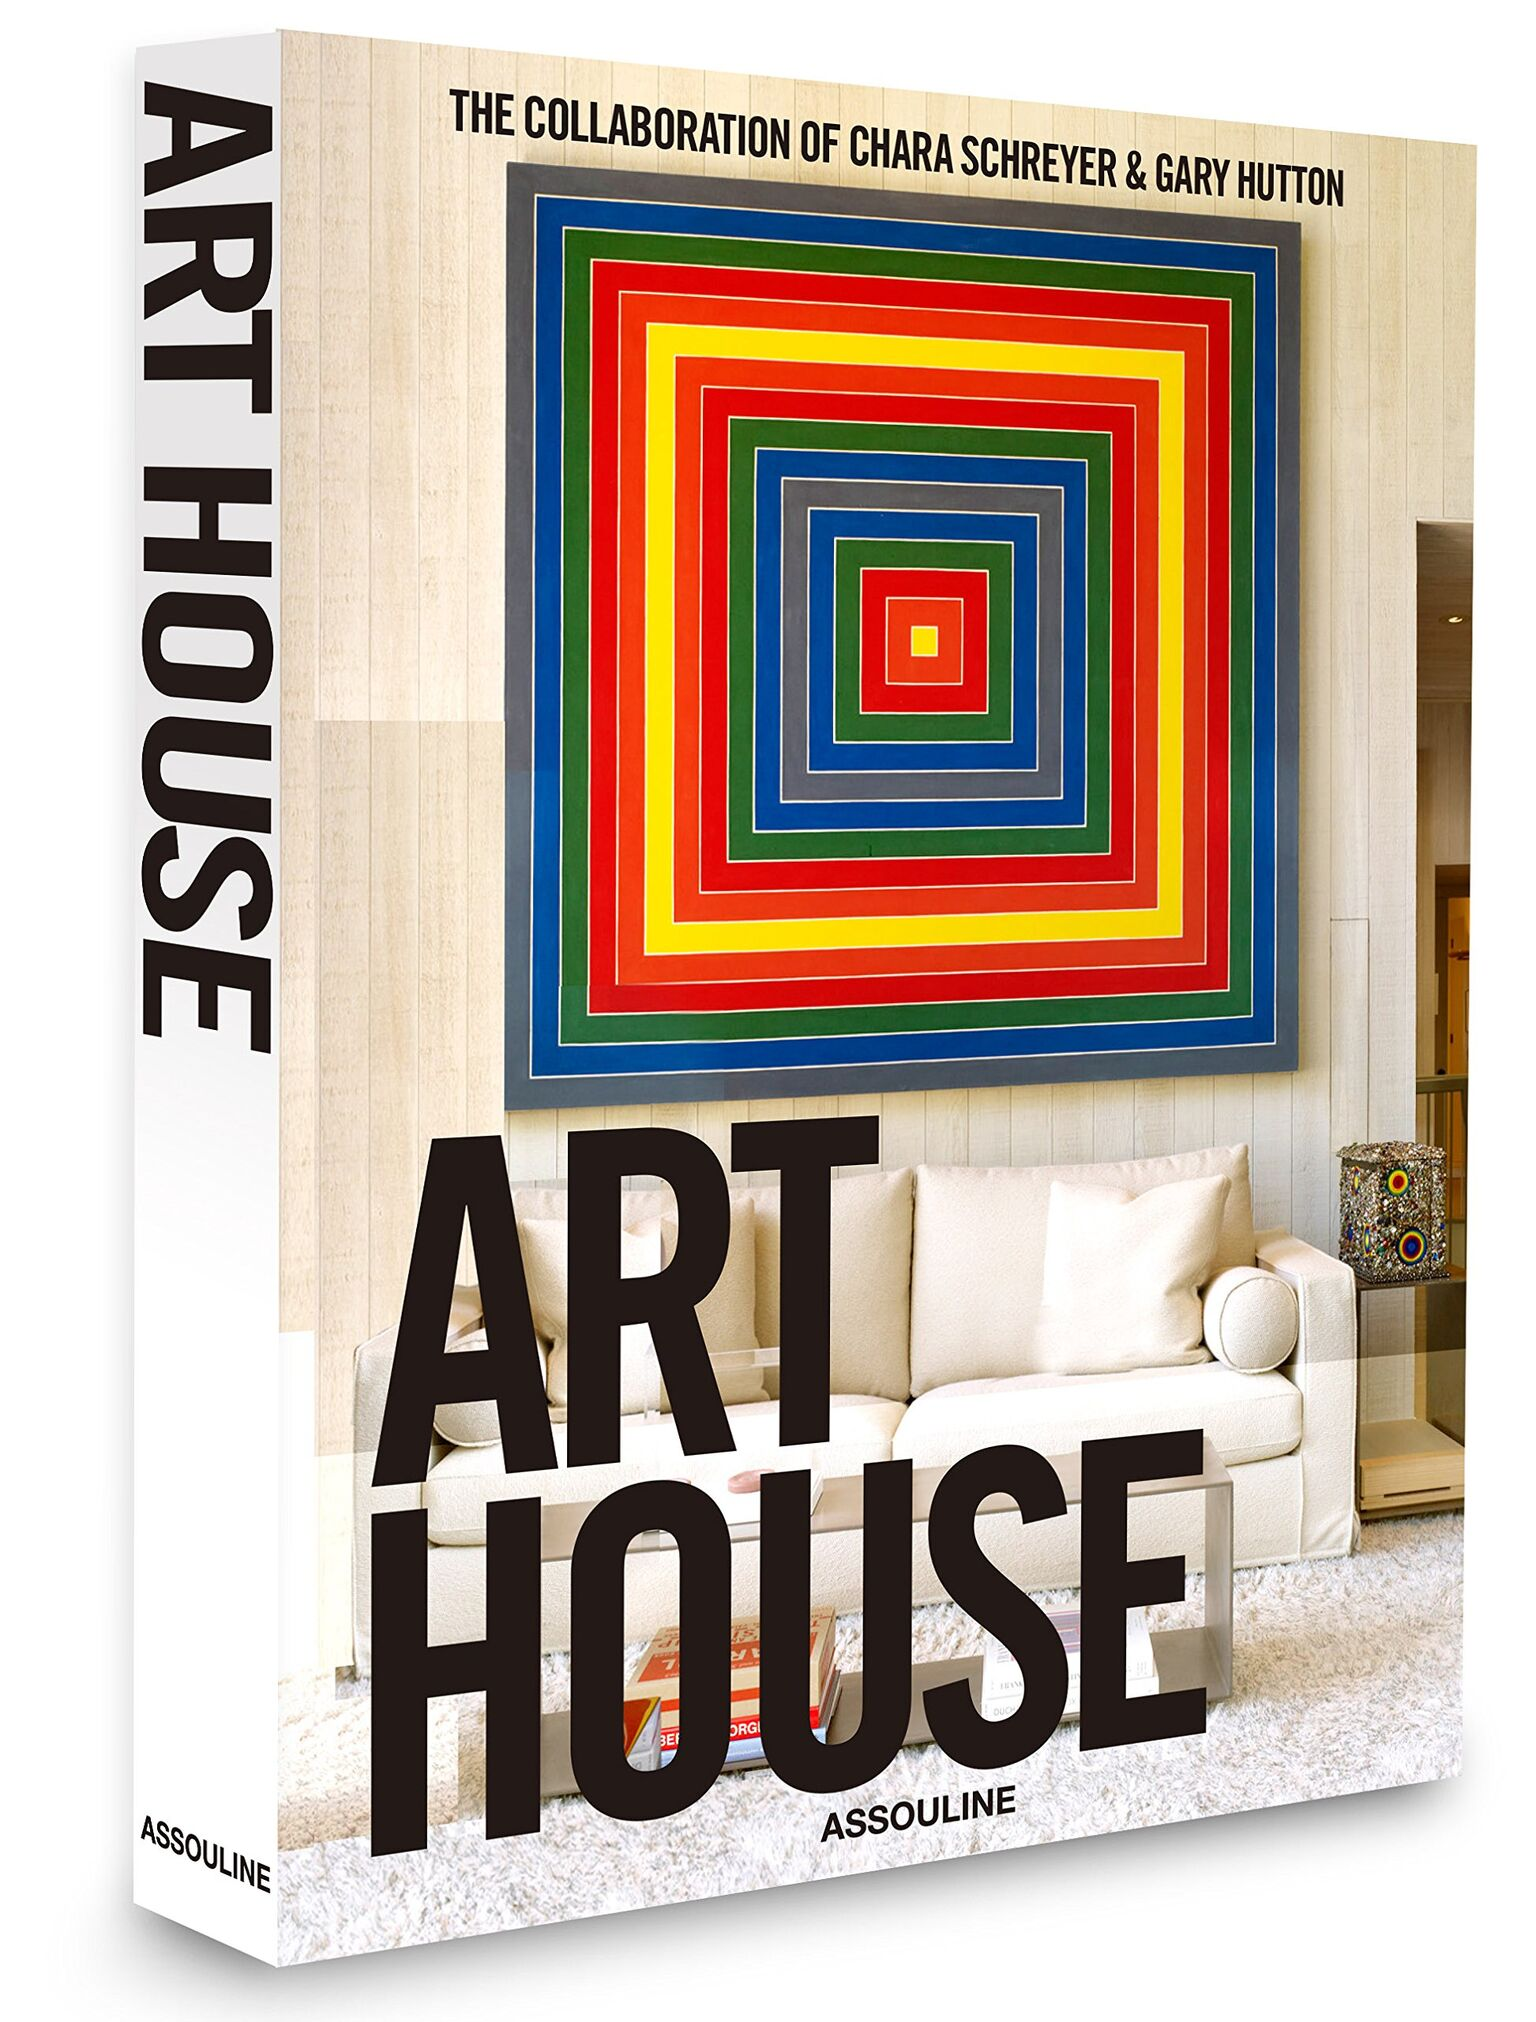 ART HOUSE - Published by Assouline